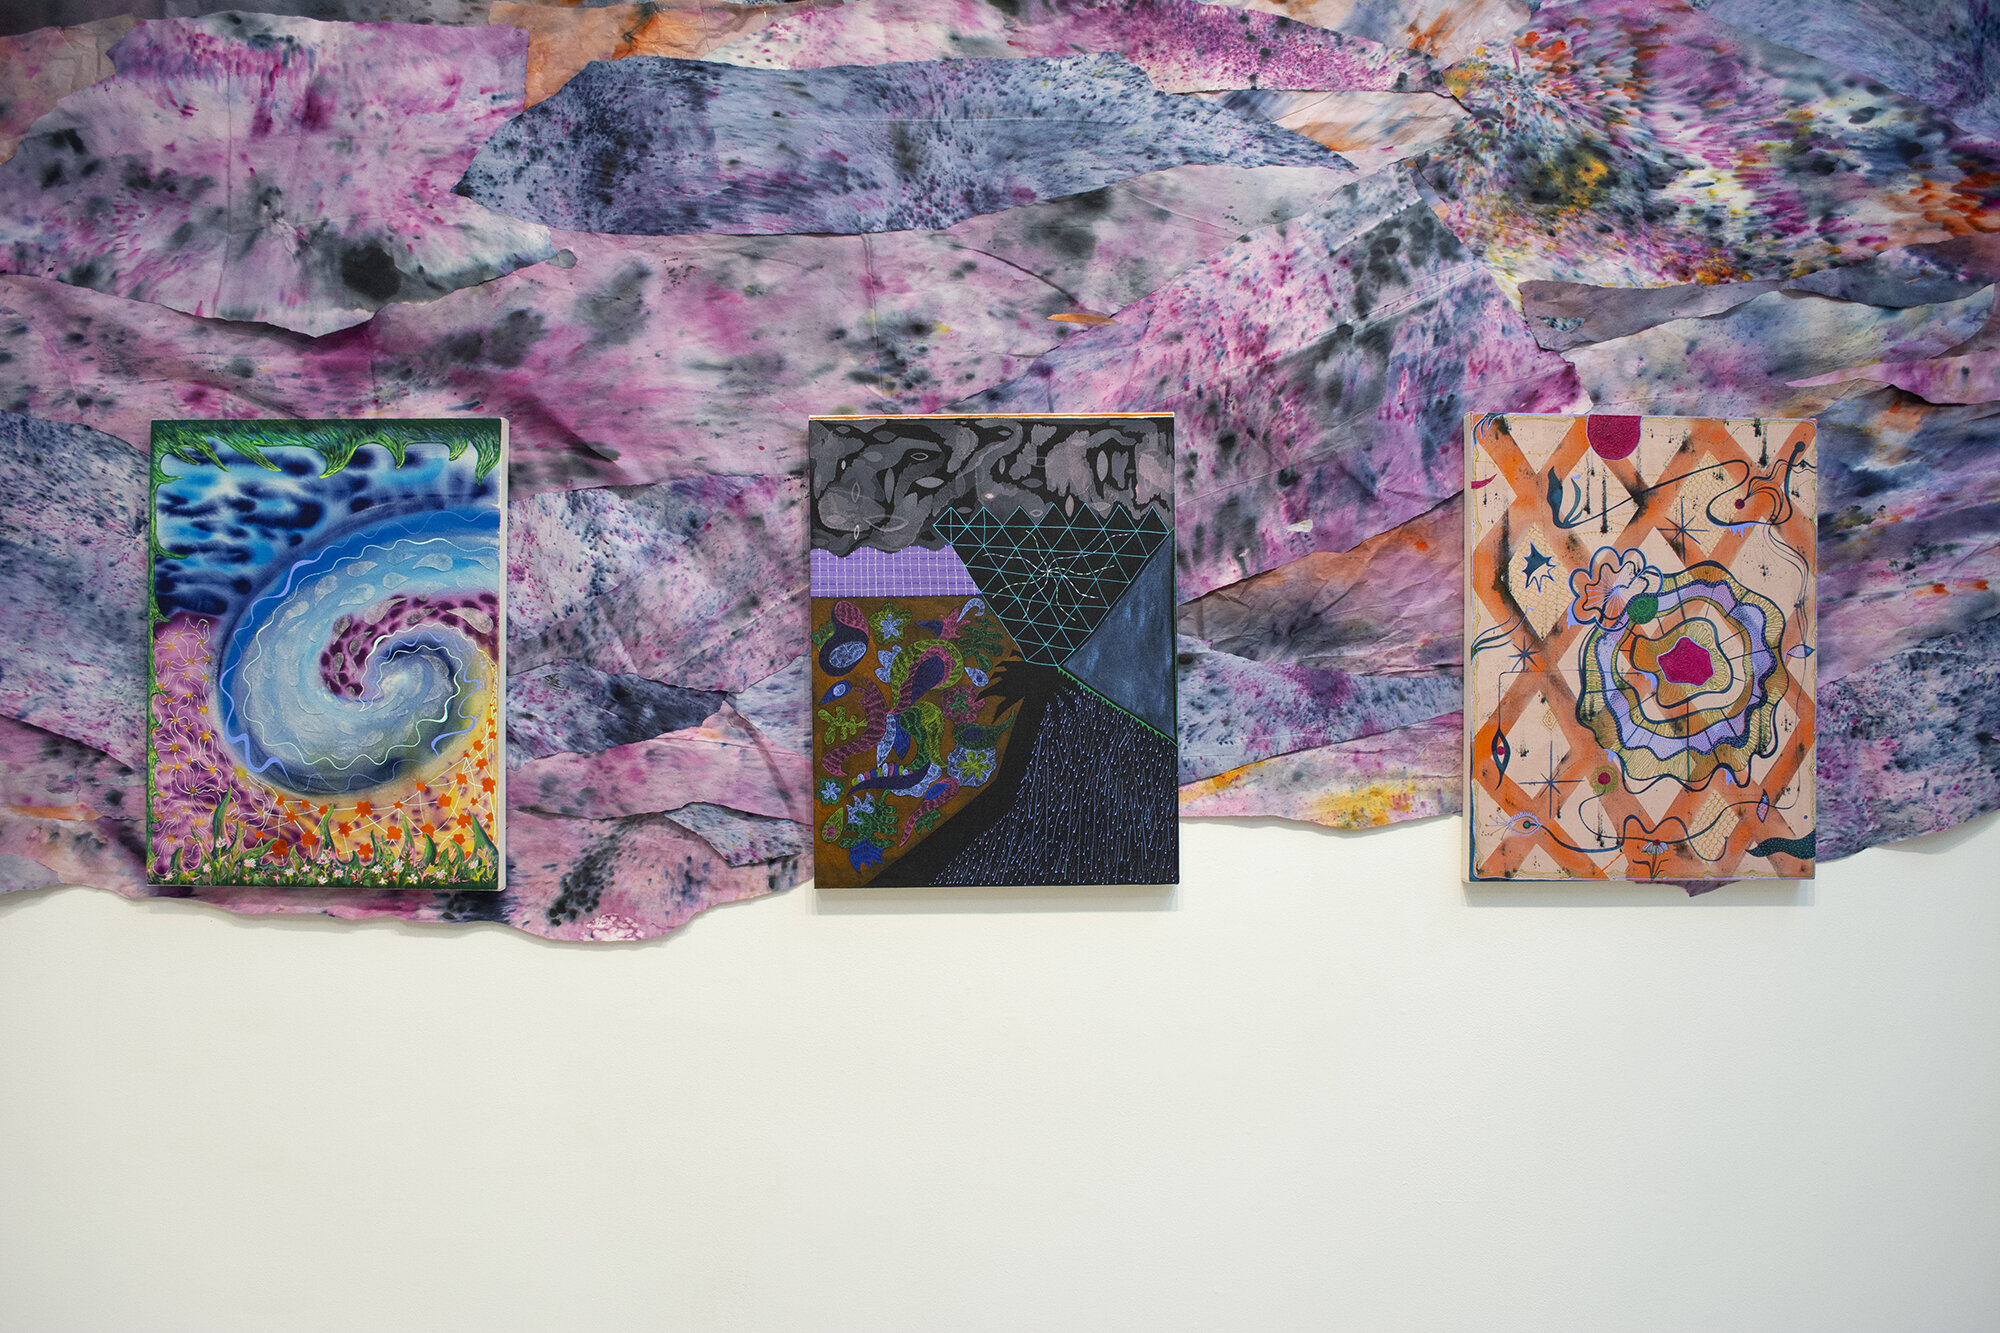 Installation view of Natessa Amin:  Hyphen .  [Image description: Installation view of three colorful patterned paintings, 20 by 26 inches each, hanging on top of purple, orange, pink, and blue hand-dyed and layered newsprint snaking across the wall of the gallery.]